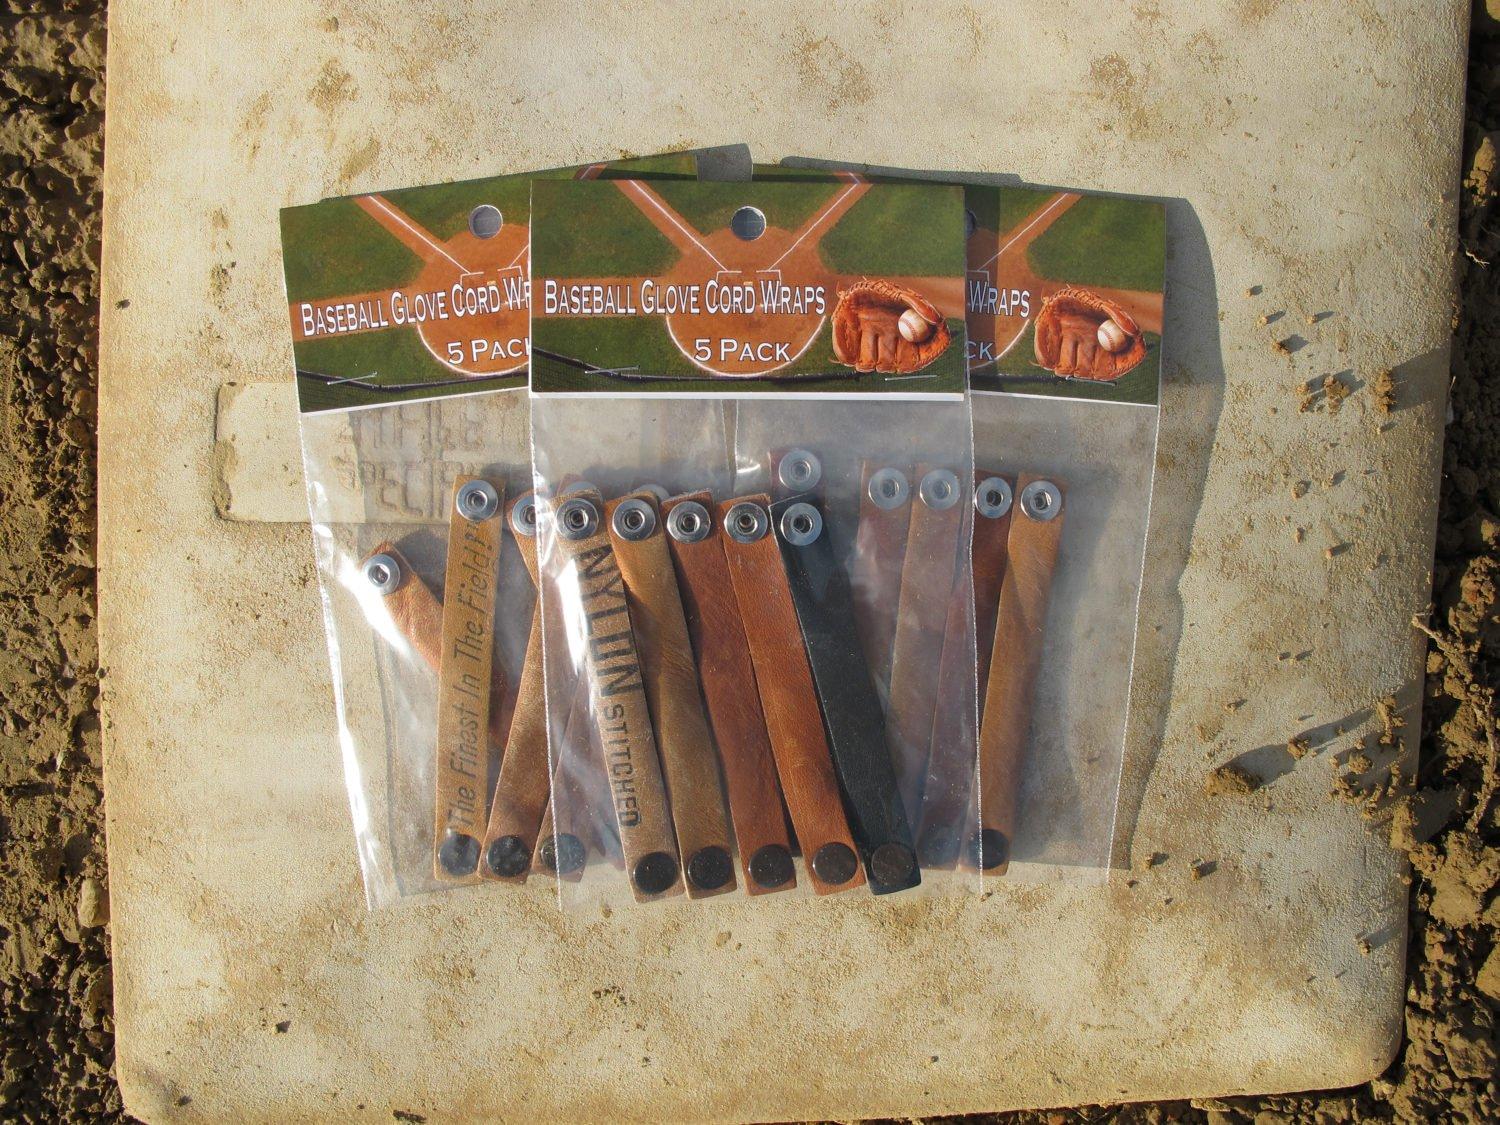 Vintage Baseball Glove Accessory Cord Cable Wraps - 5 Pack